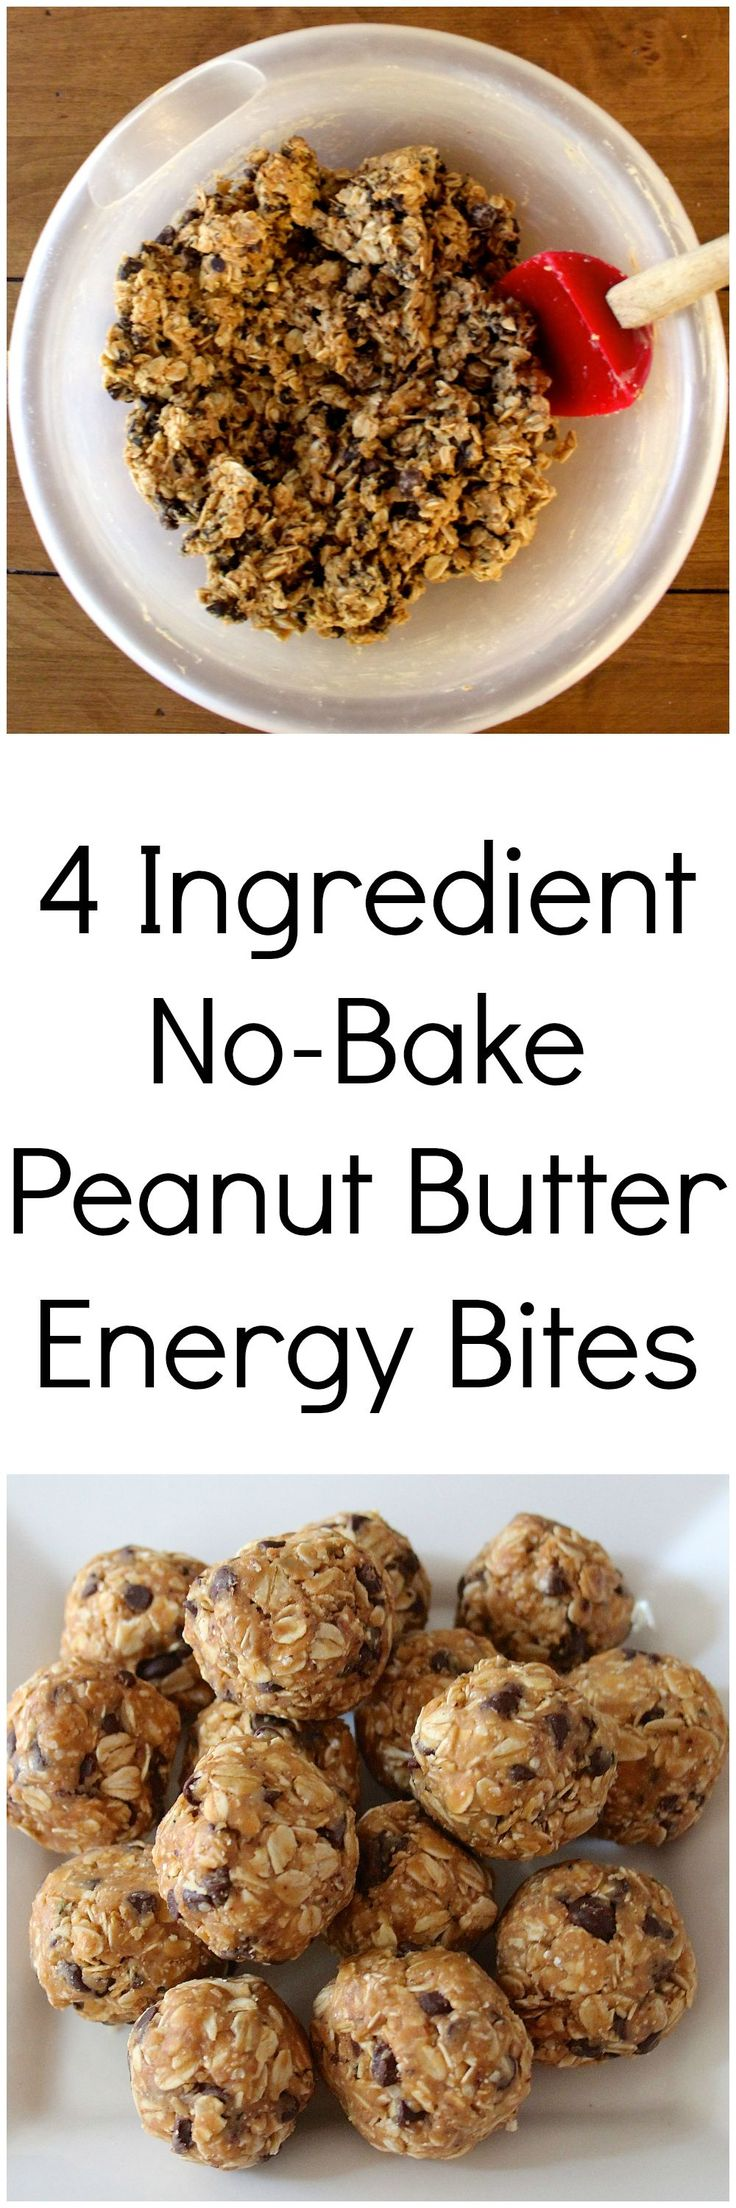 Healthy energy bites that taste just like peanut butter oatmeal cookie dough! Easy enough to make in a college dorm room.